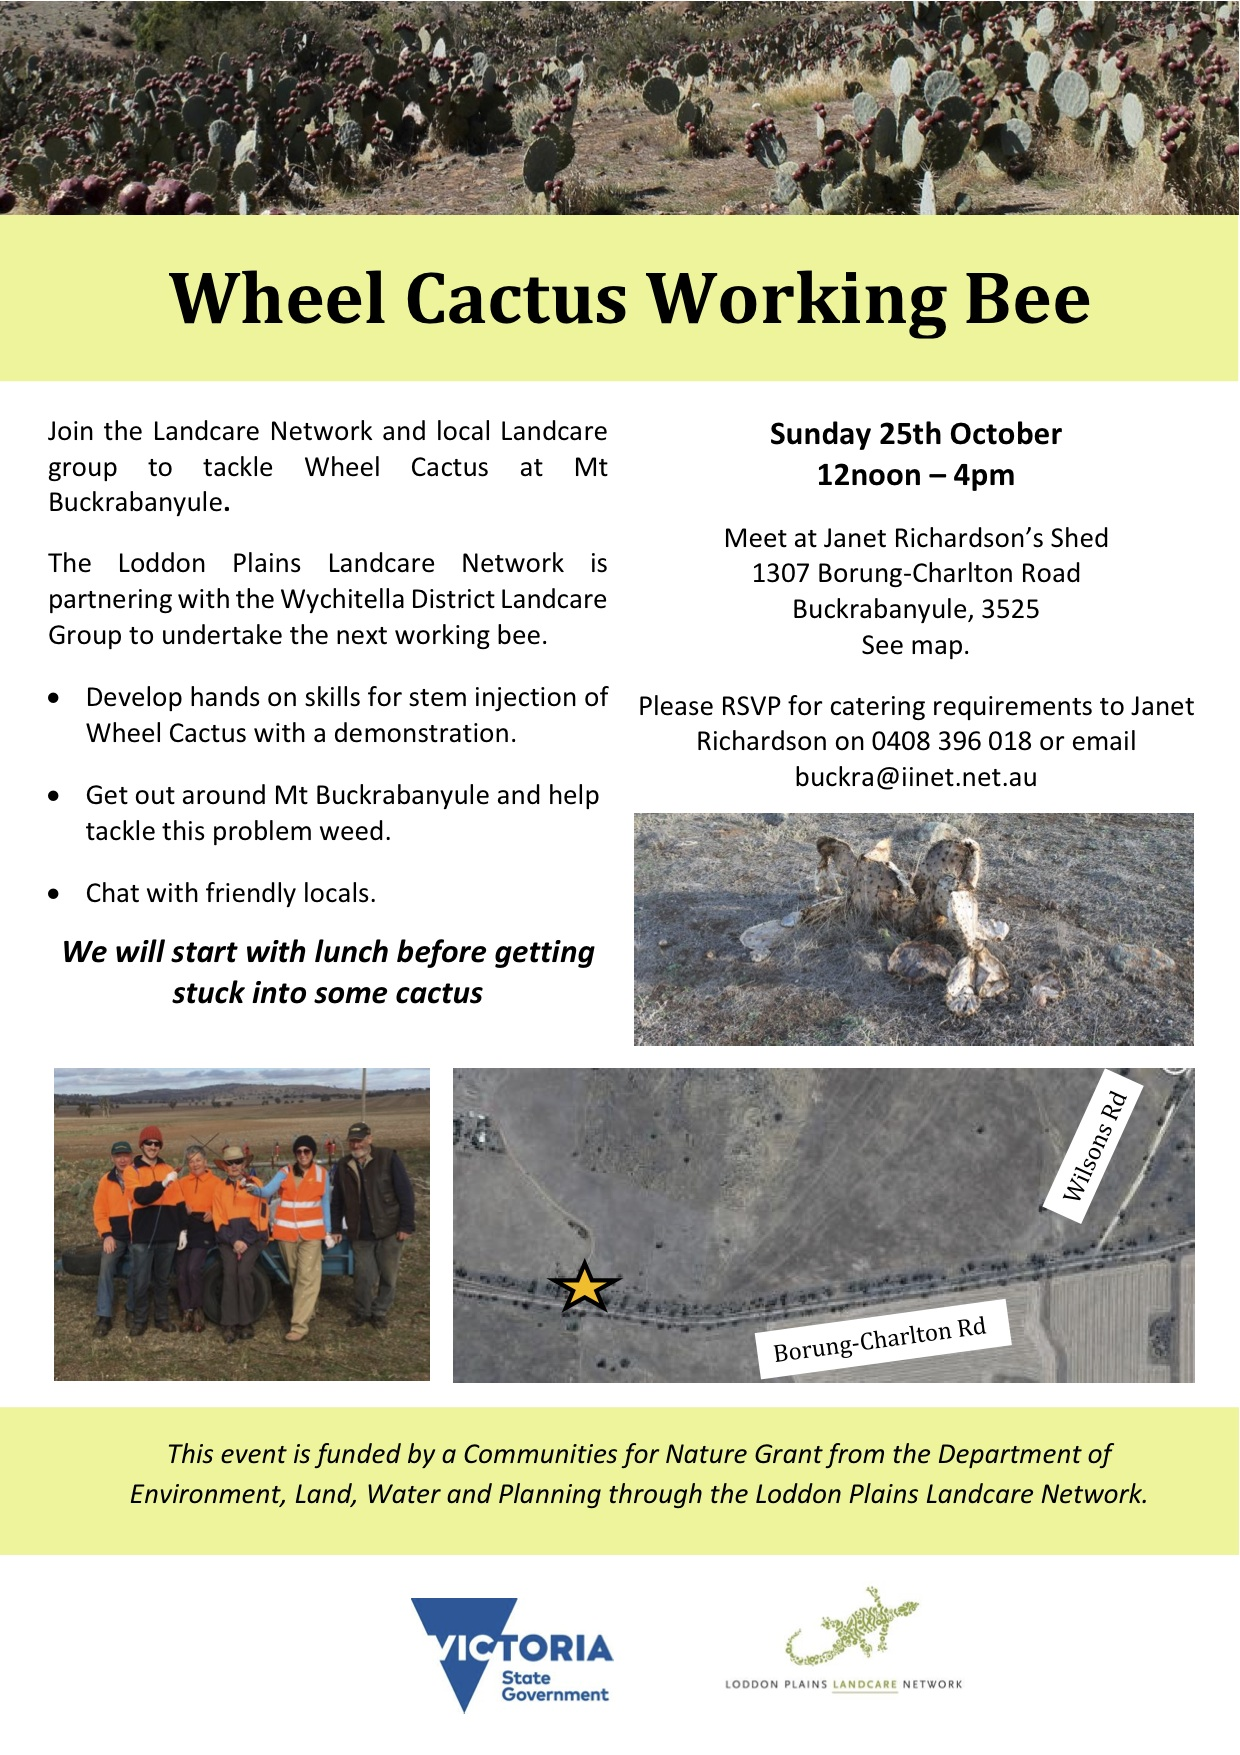 Wheel Cactus working bee flyer October 2015